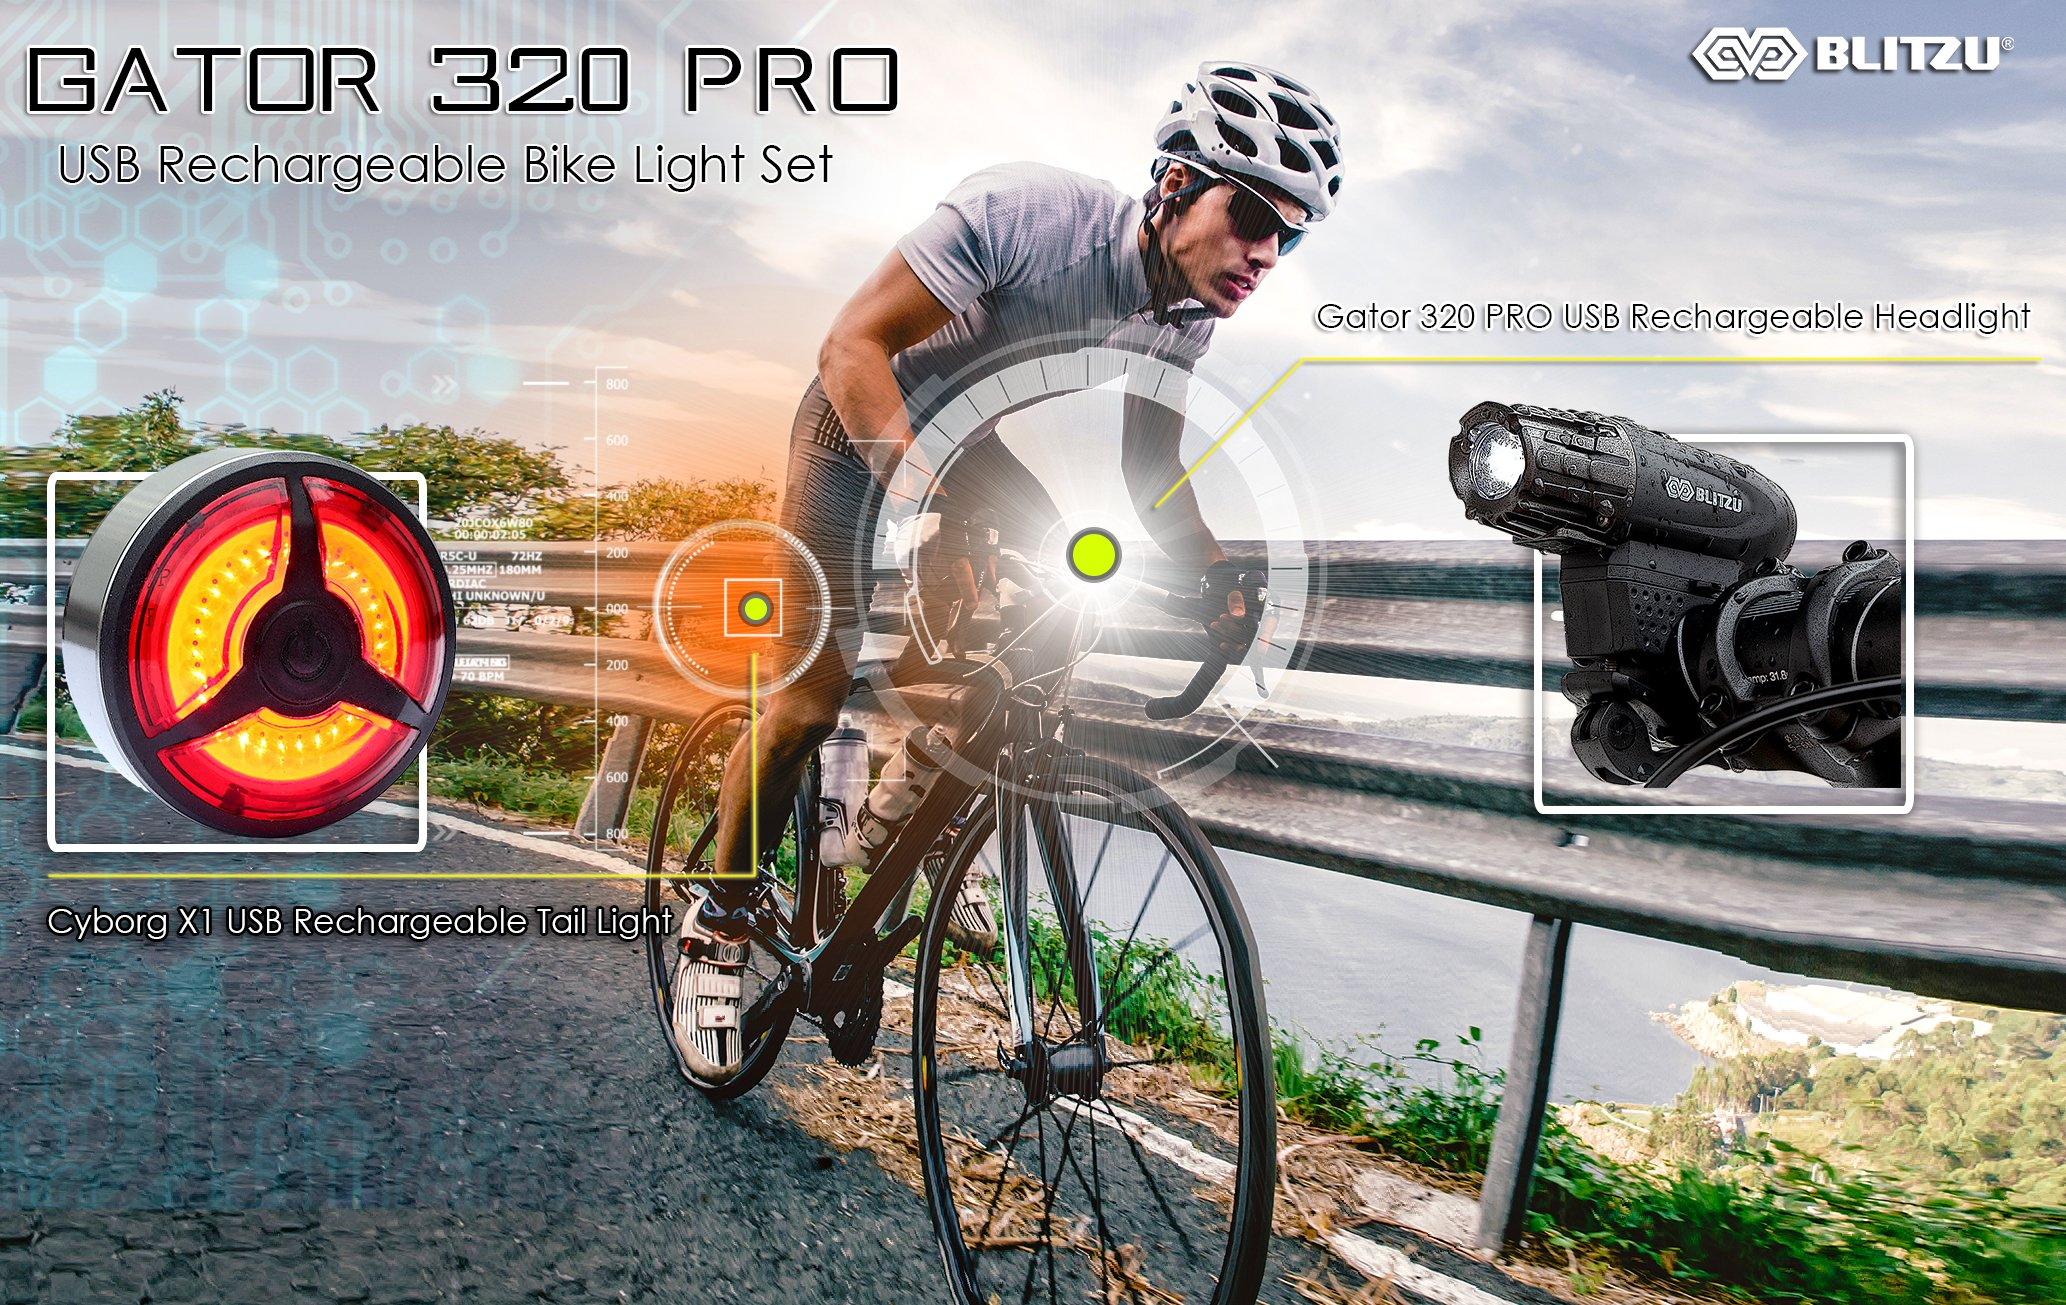 BLITZU Gator 320 PRO USB Rechargeable Bike Light Set Powerful Lumen Bicycle Headlight Free Tail Light, LED Front and Back Rear Lights Easy to Install for Kids Men Women Road Cycling Safety Flashlight by BLITZU (Image #7)